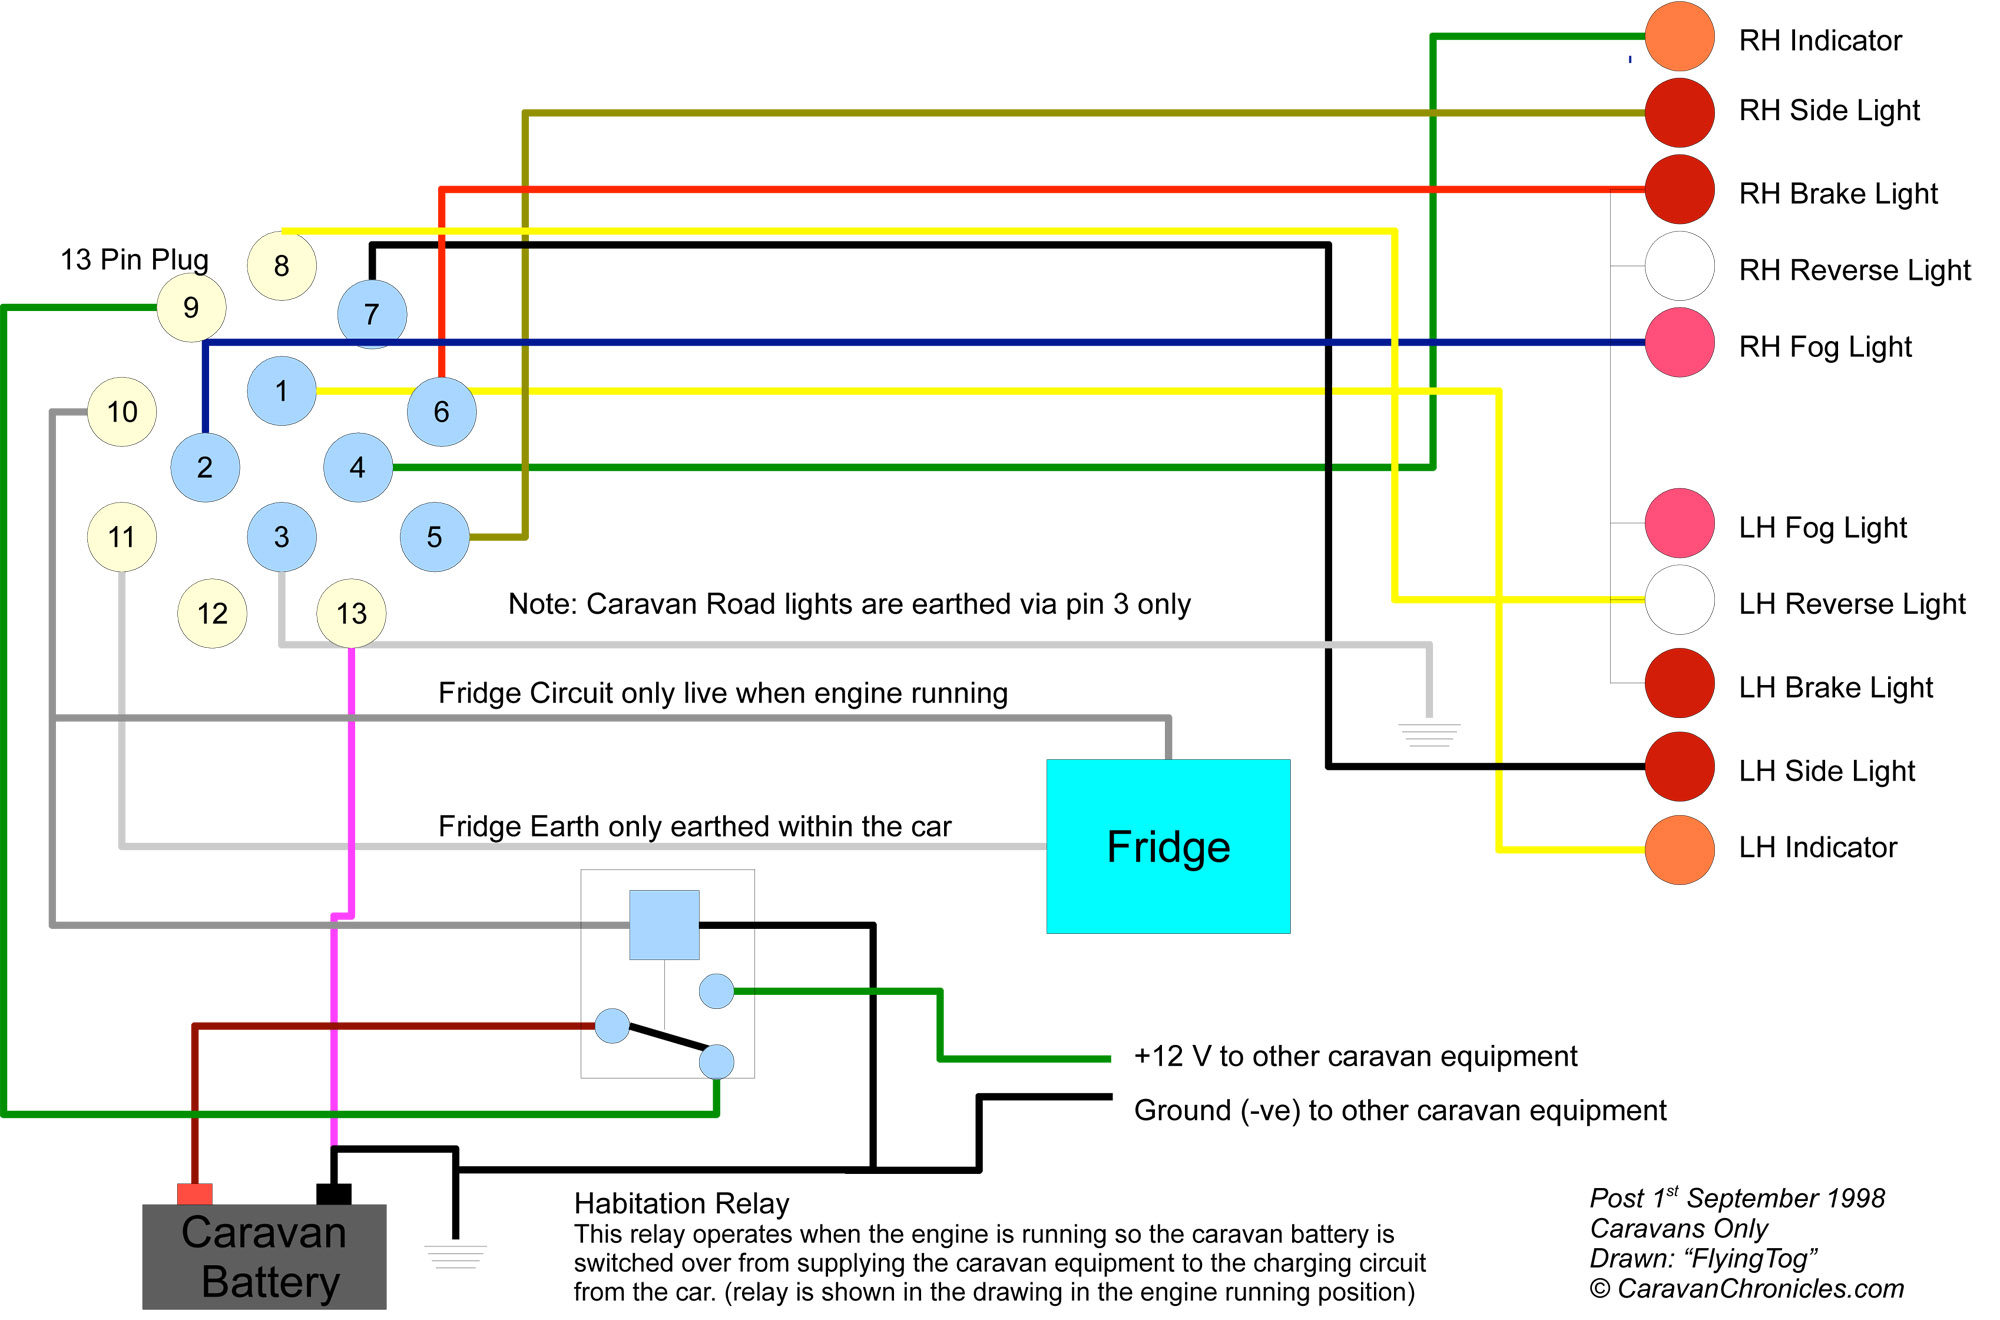 Automotive Lighting Wiring Diagram Library Industrial Standard And Vectorbased For Electrical Schematic Diagrams Typical